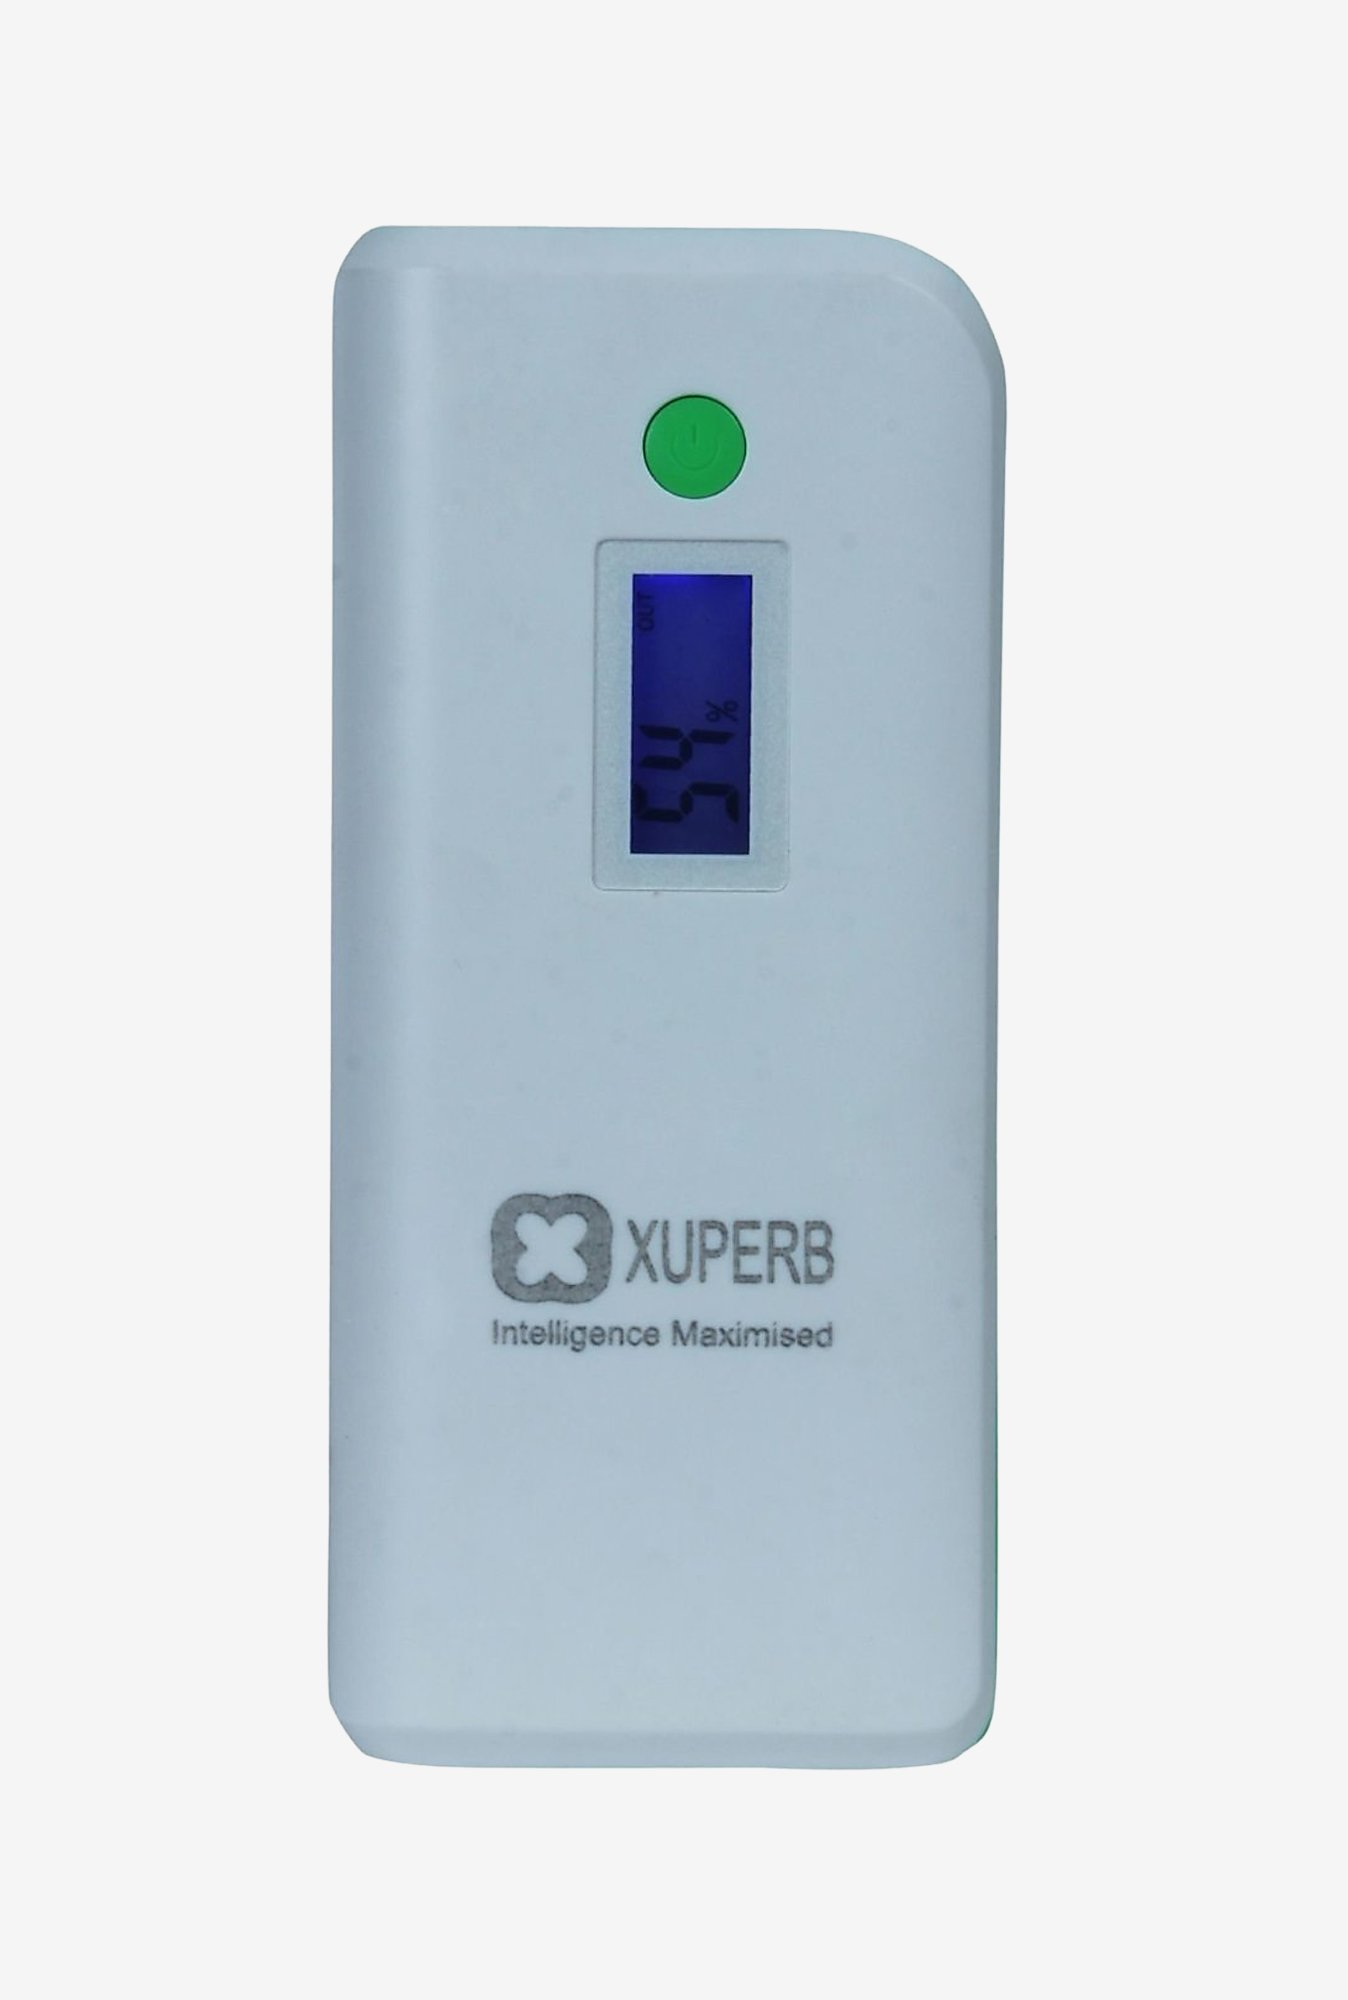 Xuperb XU-M4-110 11000 mAh Power Bank (White & Green)